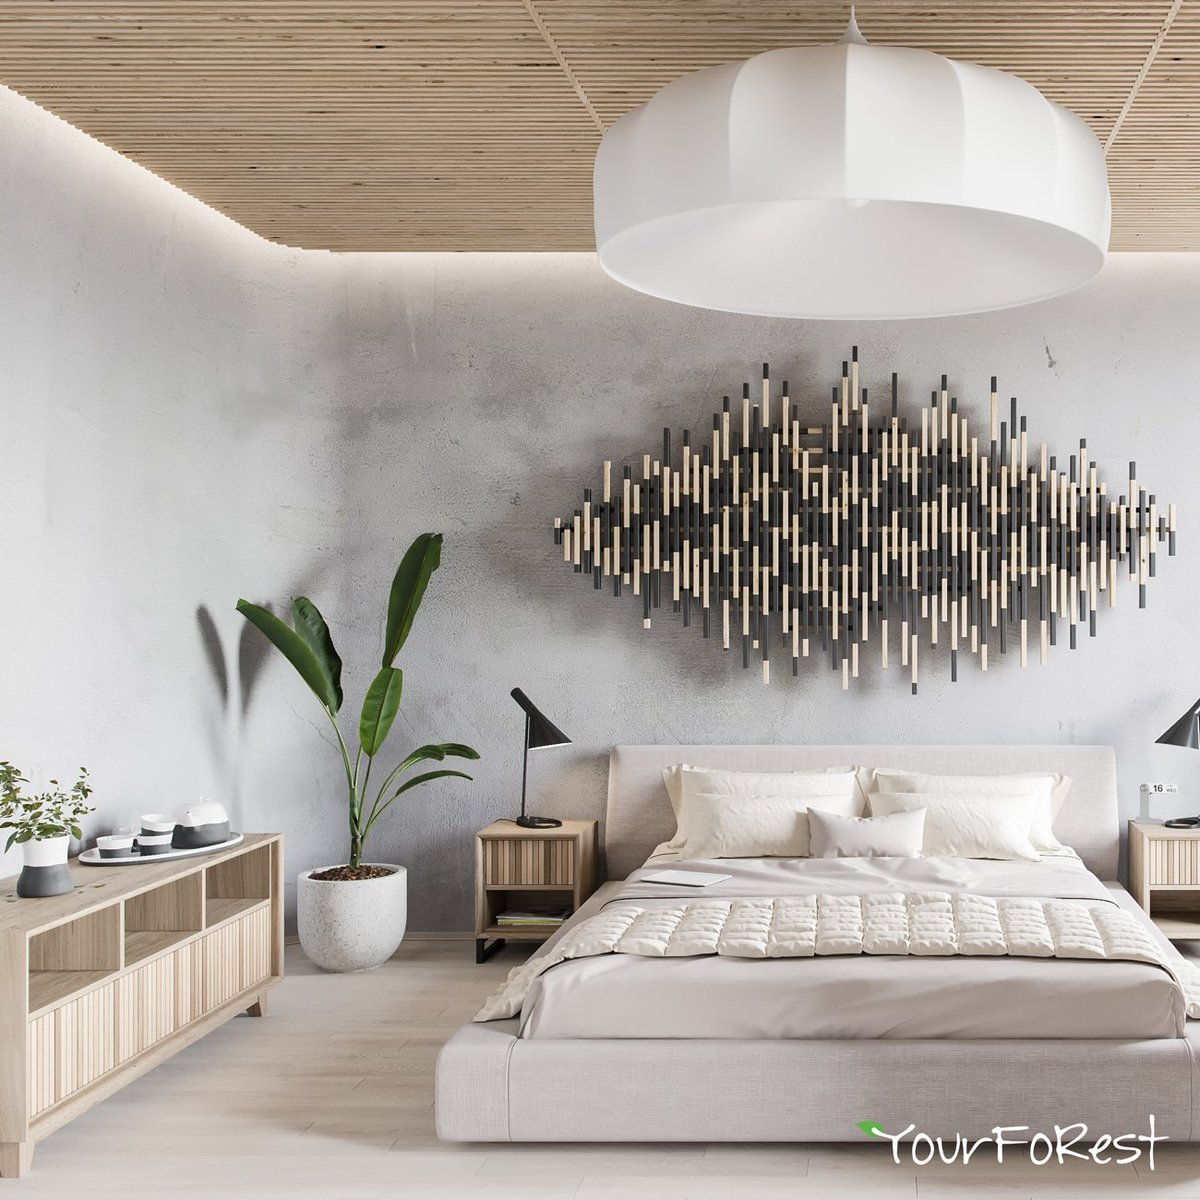 Image of: Yourforest Wood Panels On Twitter Rail Approach In Decoration Of Our Bedside Furniture Set And In Wall Panel Design Ceiling Wooden Panels Batten Natural Material Ash Oak Coating Lacquer Oil Art Toning